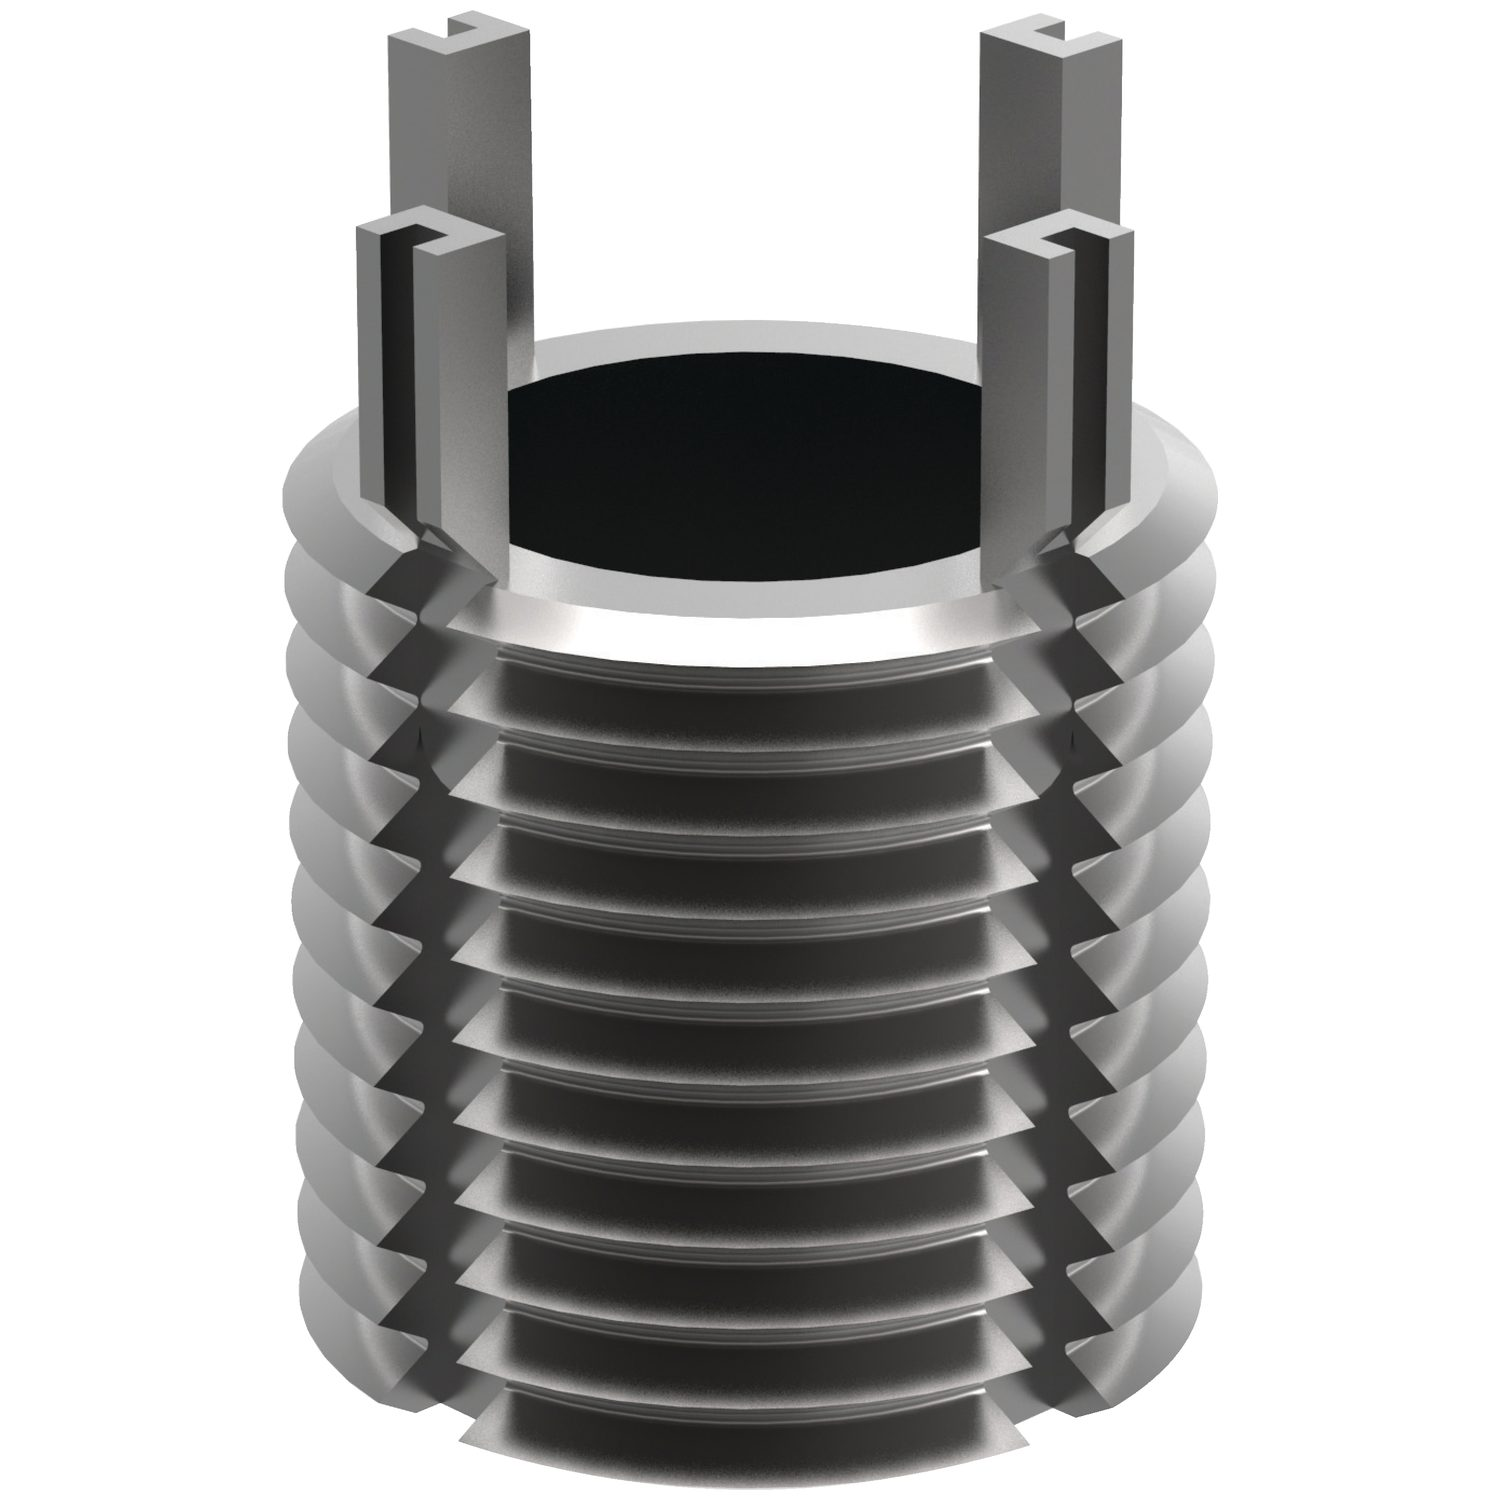 Thread Inserts - Heavy Duty Heavy duty thread inserts made from A2 stainlesss steel or steel with a phosphate finish. Easy to install.